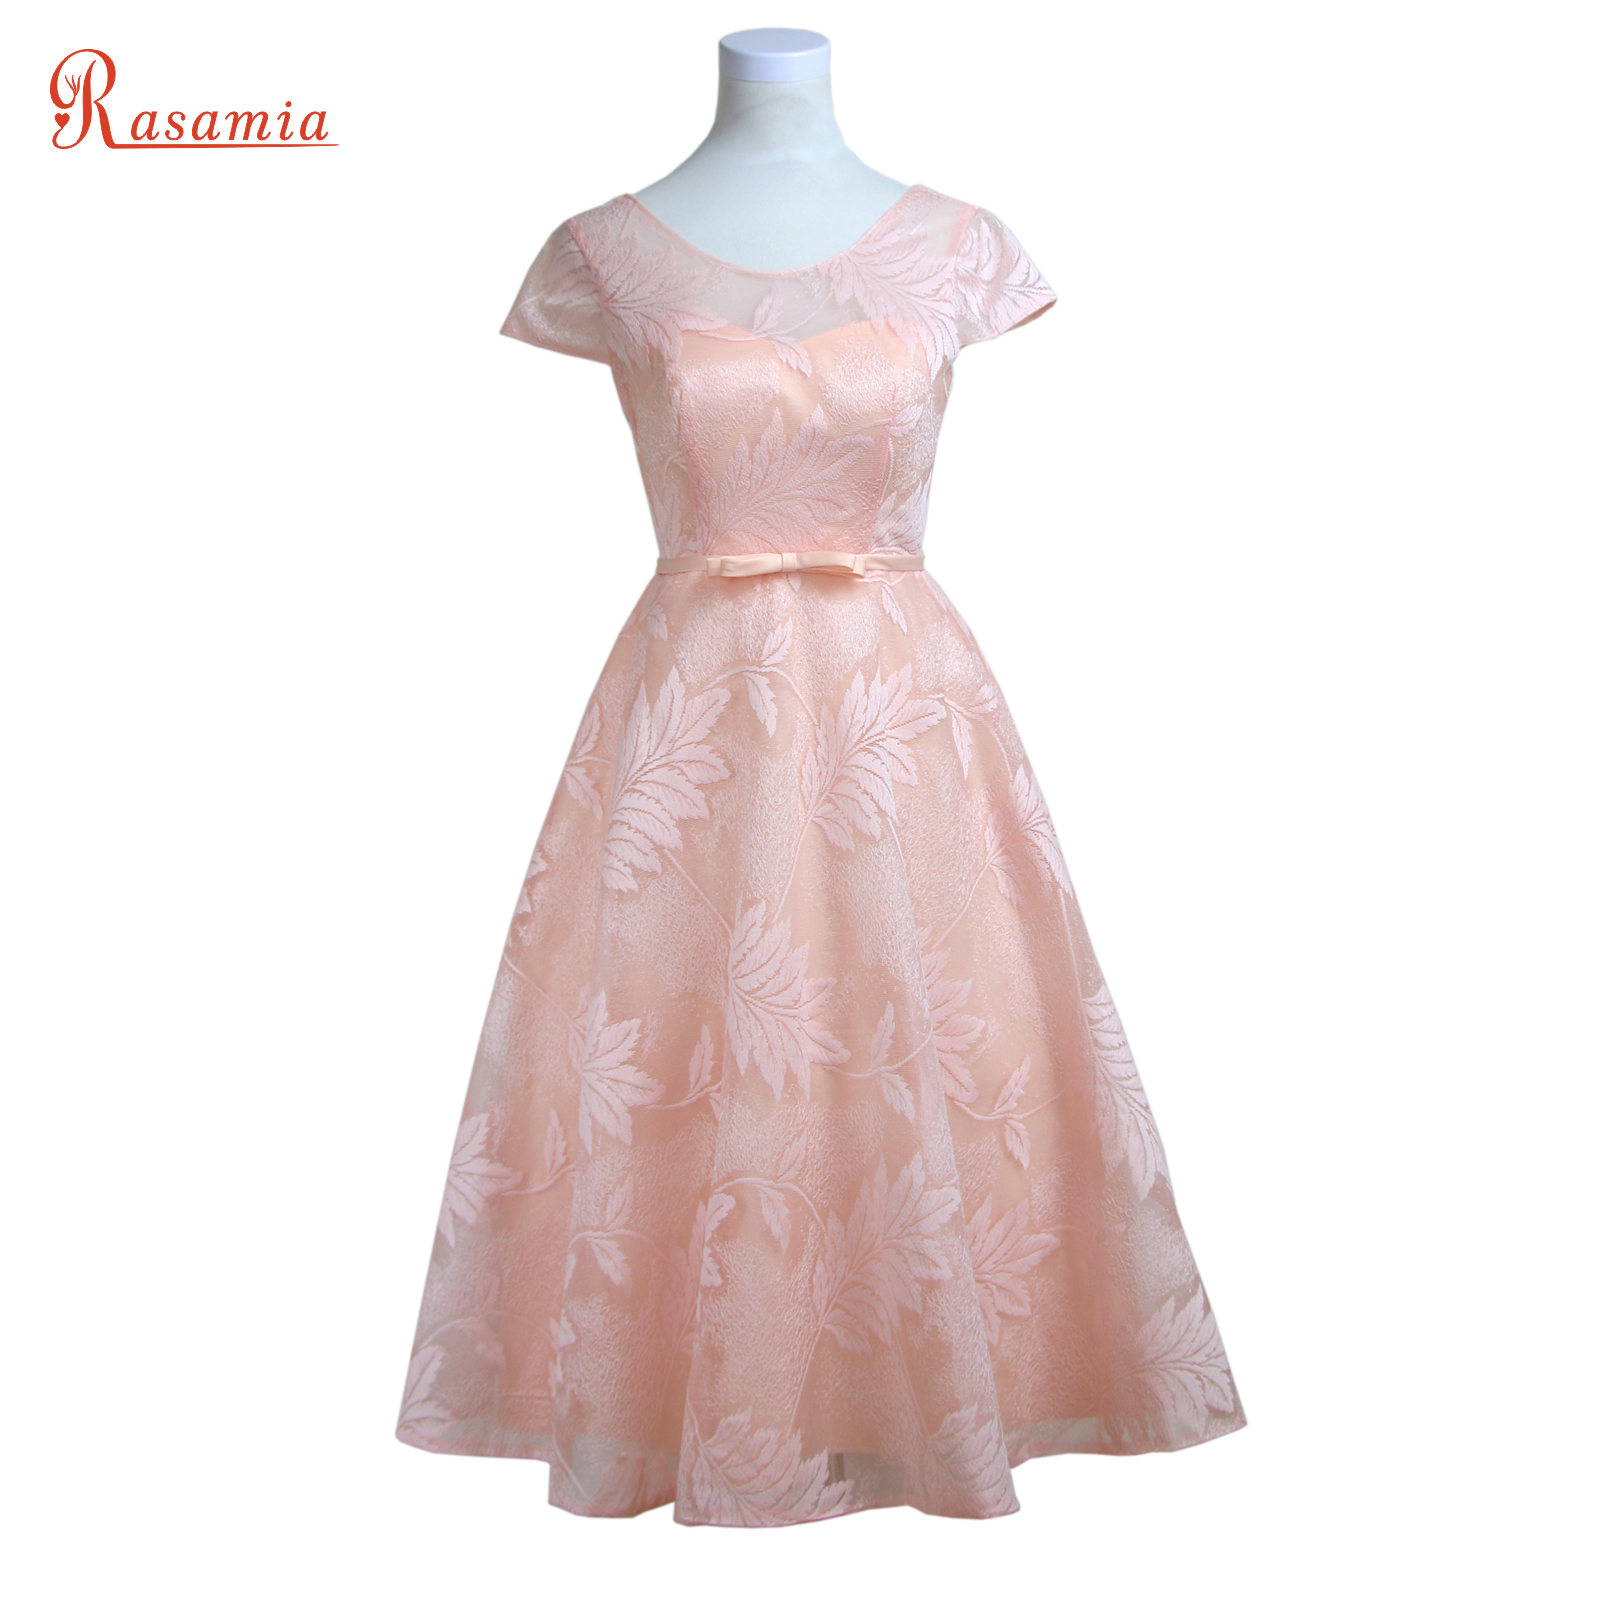 Tea Gown: Print Floral Prom Gown Dress Short Sleeve Pink Women Party